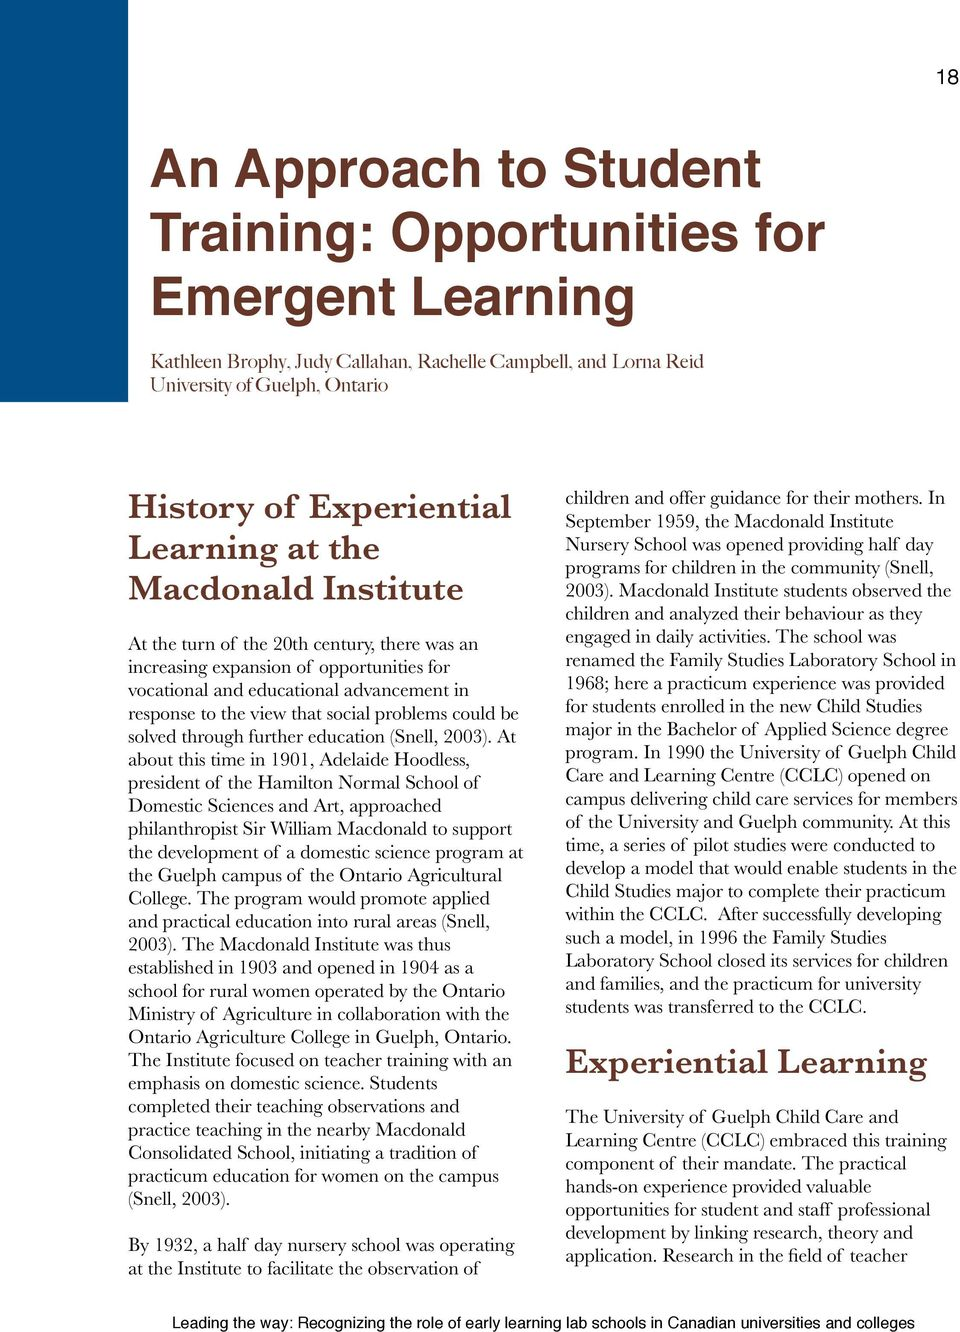 an increasing expansion of opportunities for vocational and educational advancement in response to the view that social problems could be solved through further education (Snell, 2003).